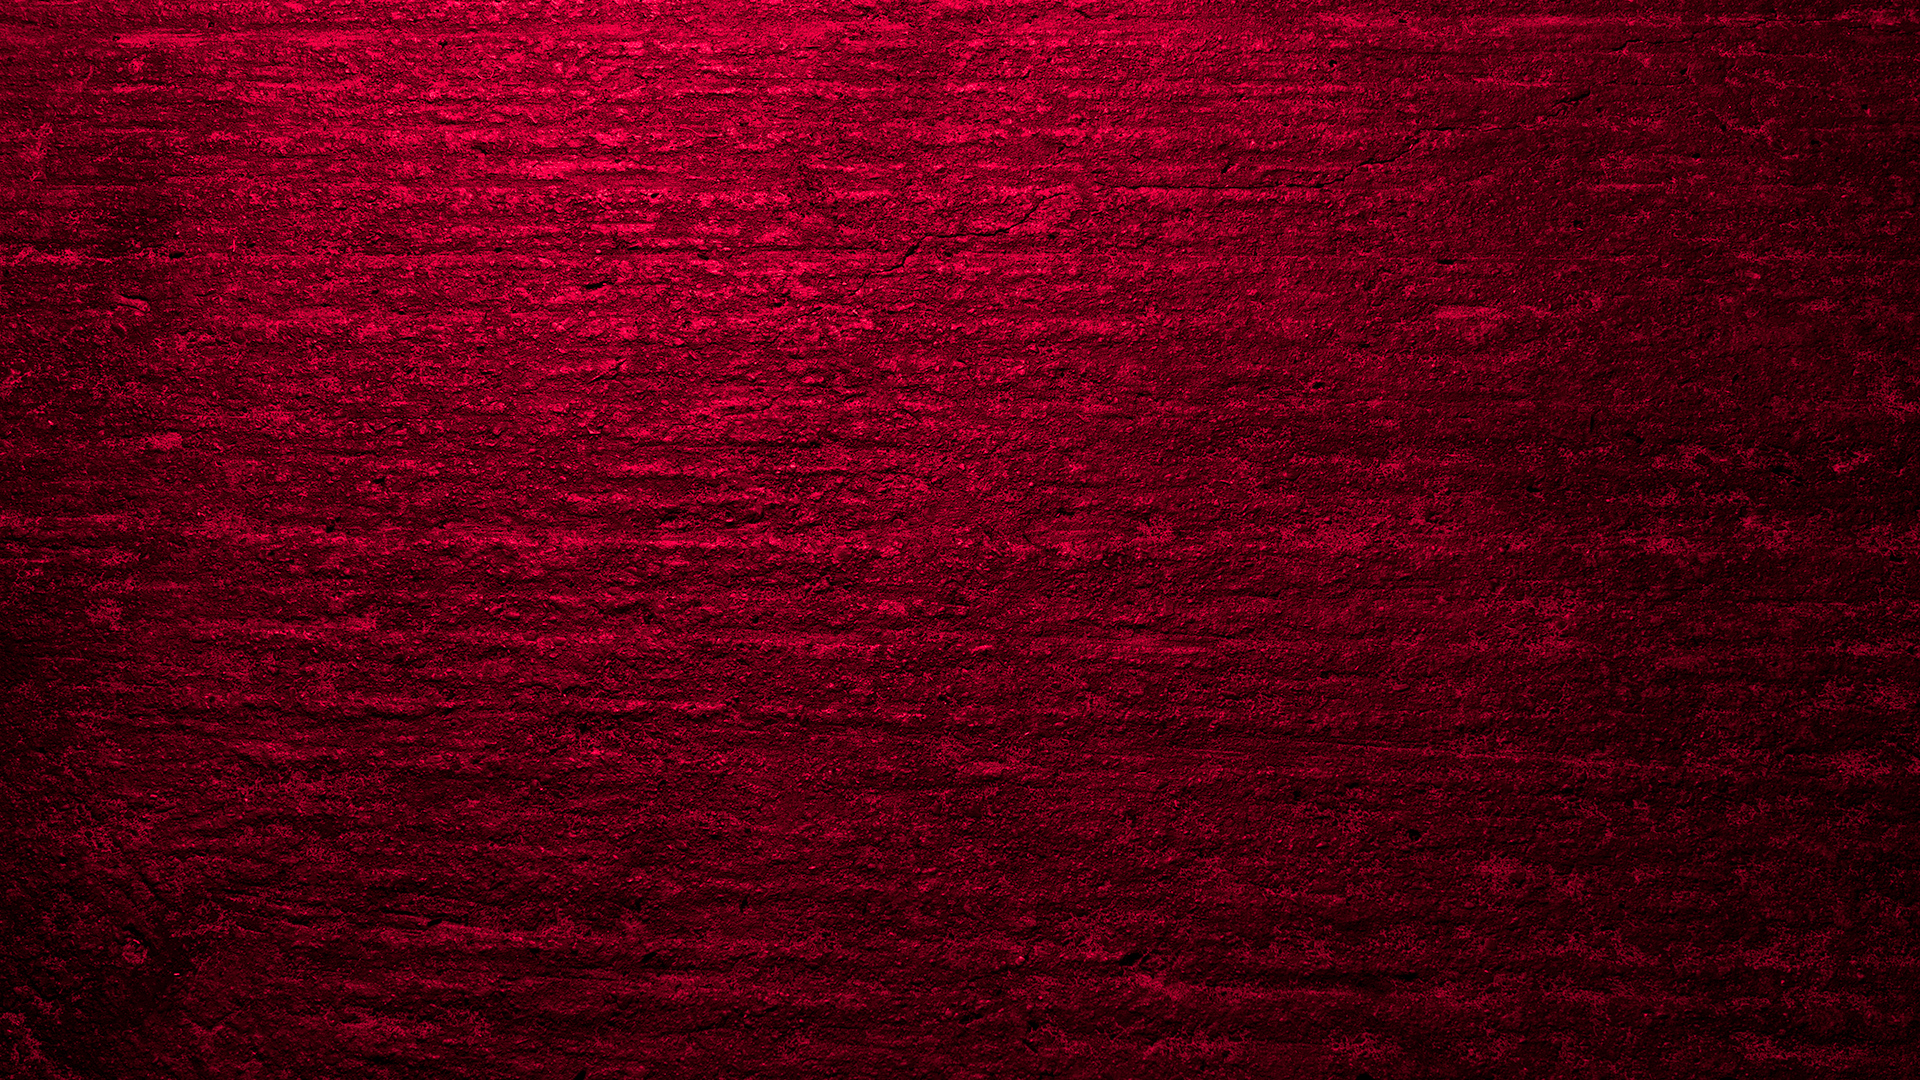 Red Grunge Concrete Texture HD